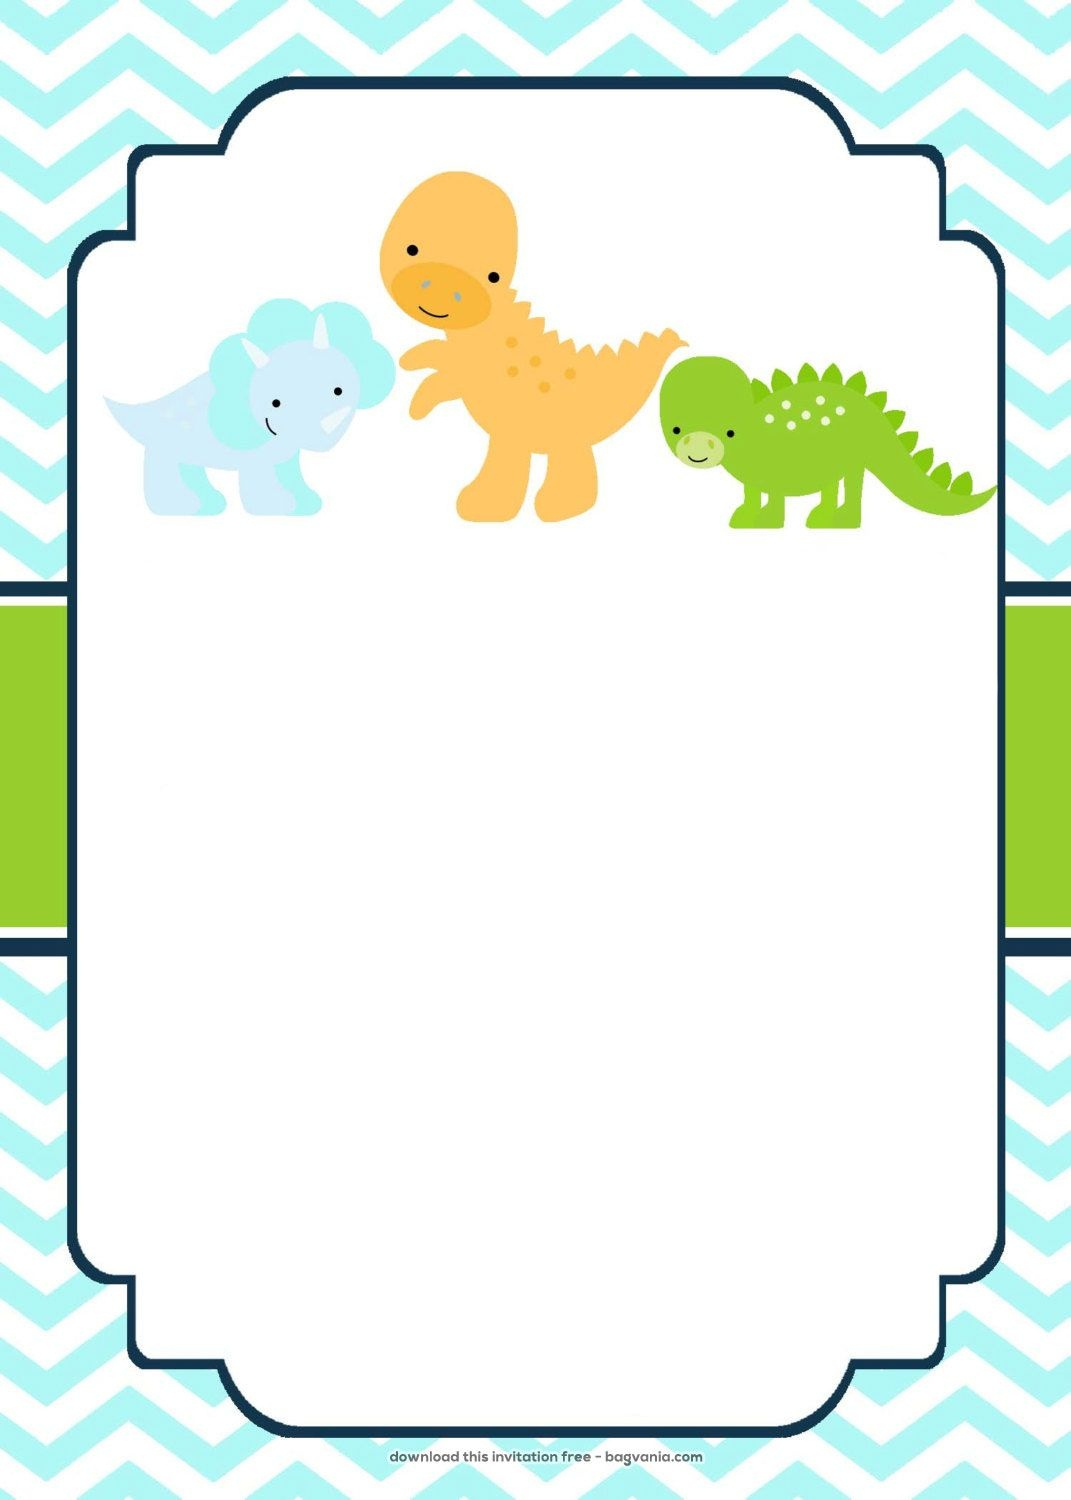 Download Now Free Dinosaur Birthday Invitations | Bagvania - Free Printable Dinosaur Baby Shower Invitations